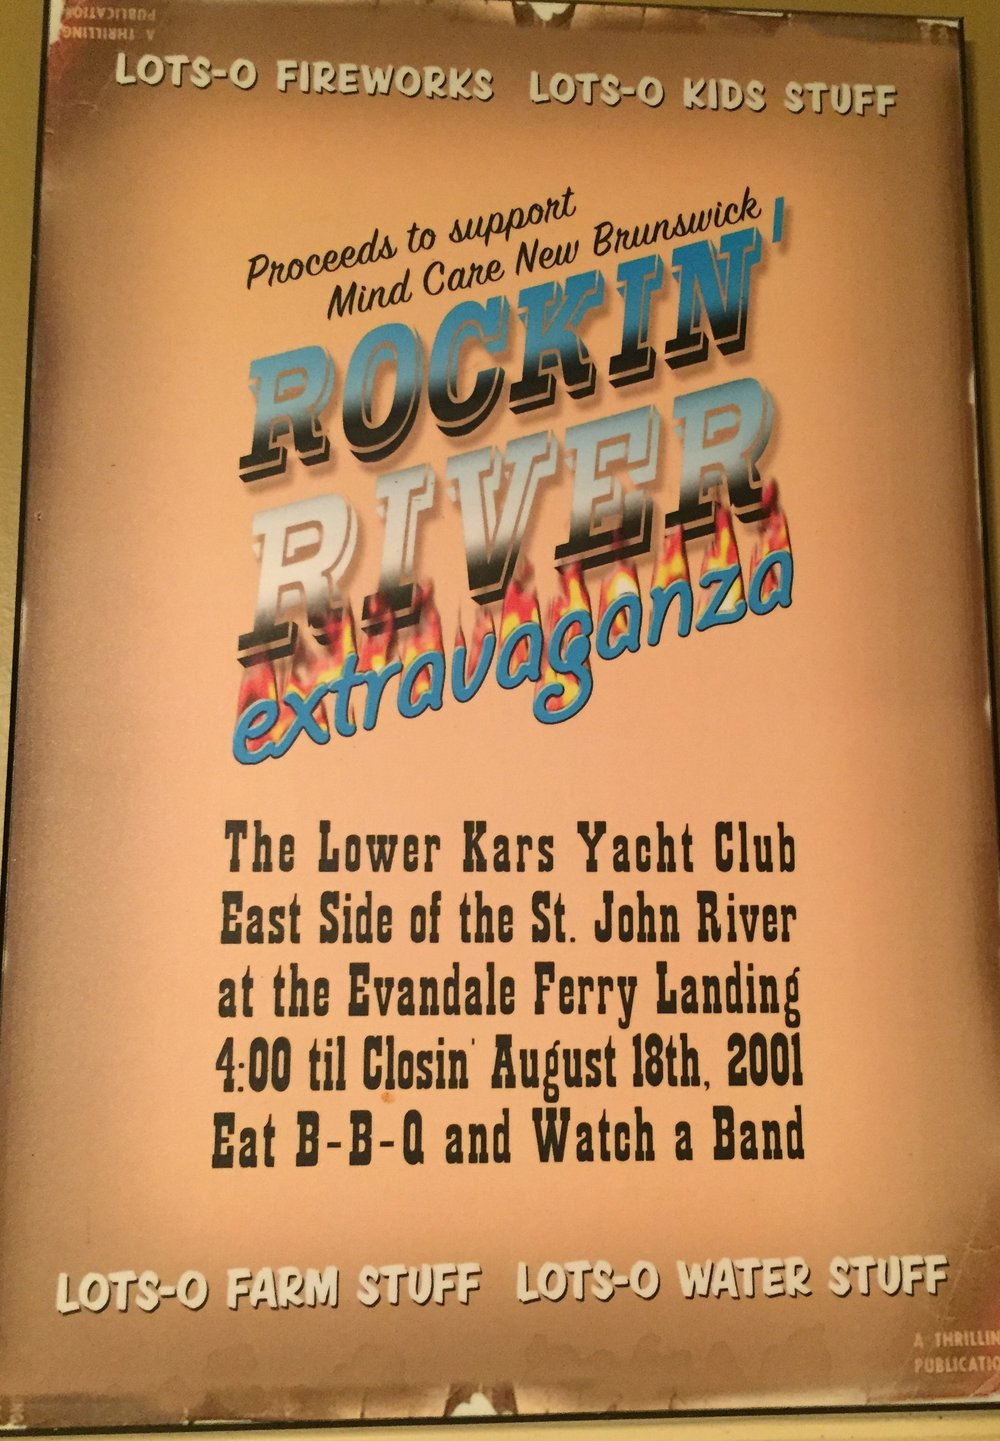 - We went to the drawing board and drafted a plan,worked late hours, and got the farmer's tan.The day came about and the party was grand,we partied all night to that Rockin' River band.